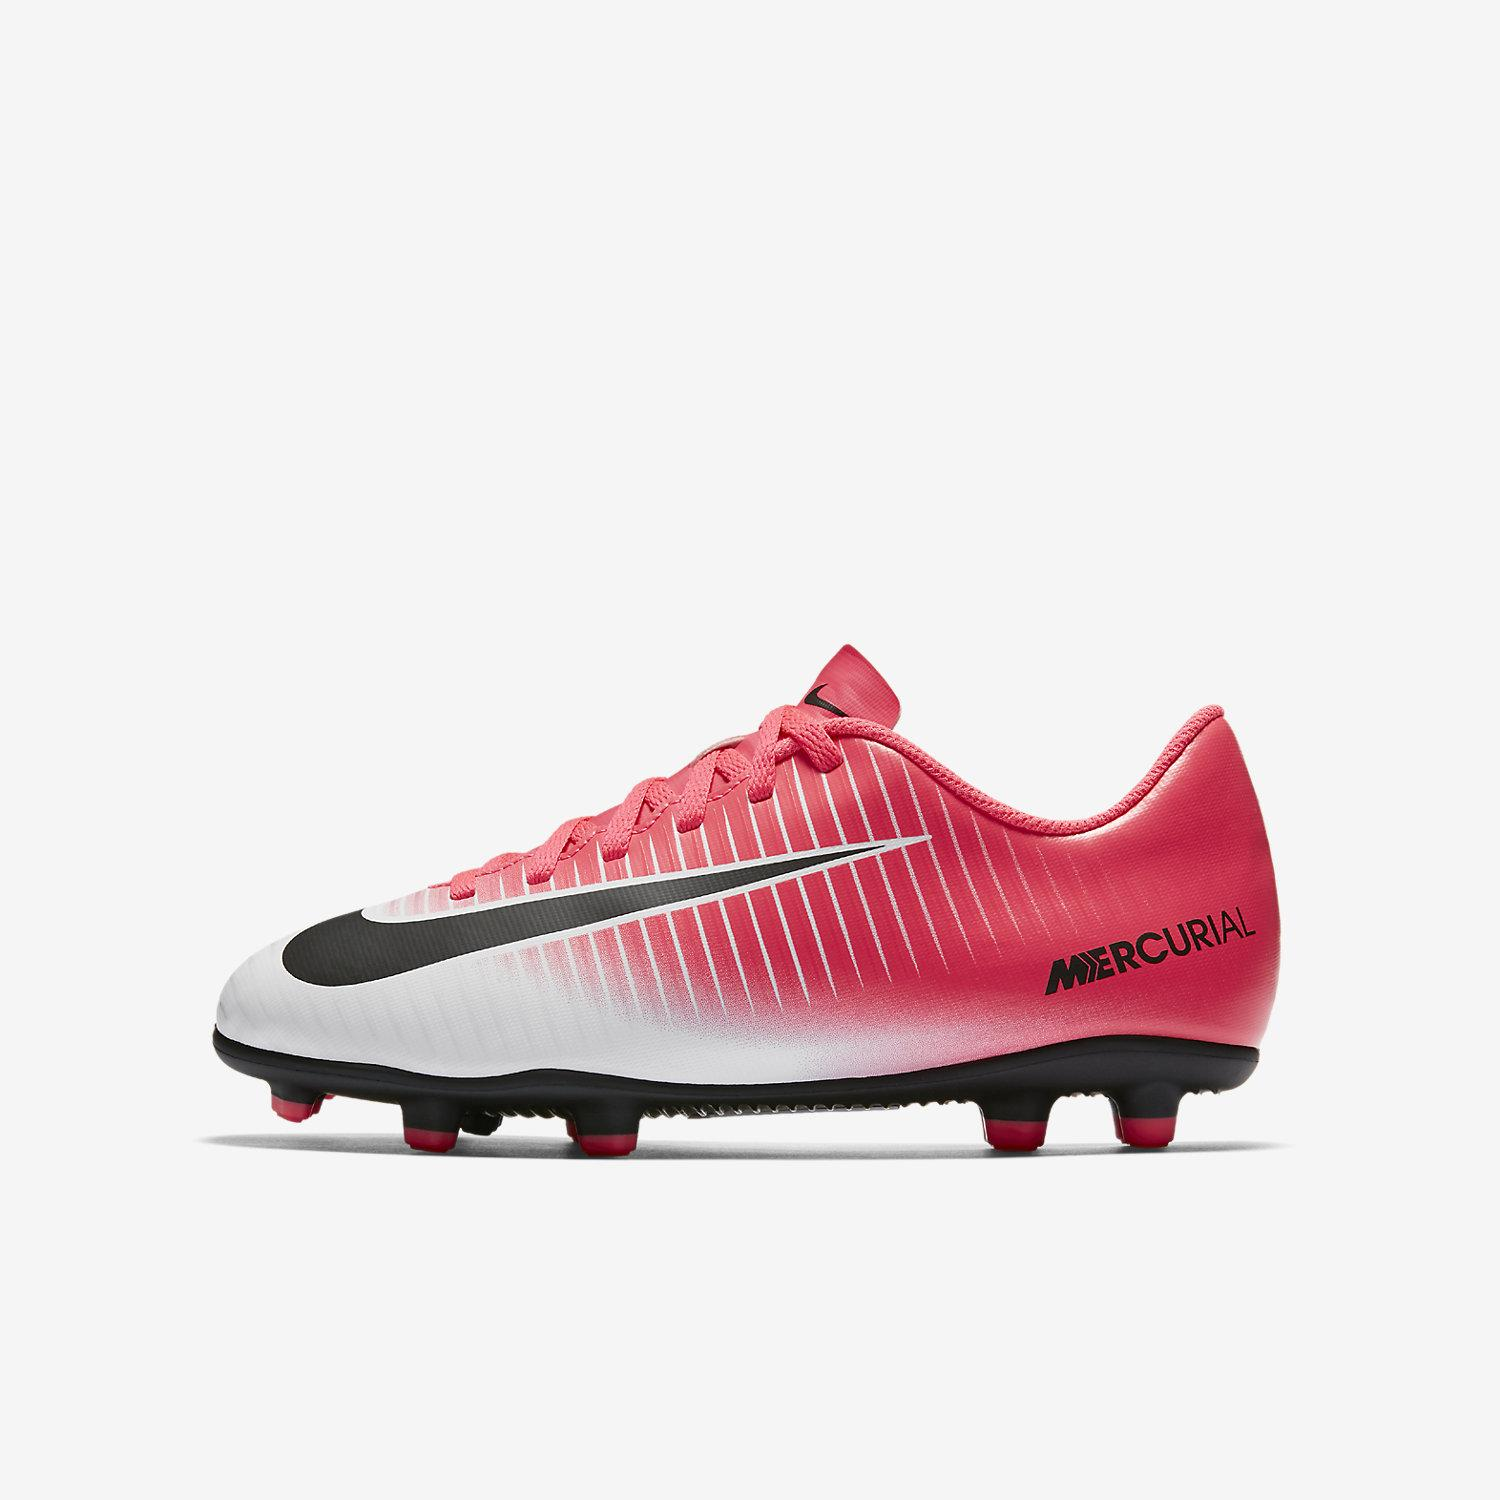 6977426c2230 Nike Football Shoes Mercurial Vortex Iii Fg Junior Racer Pink black ...